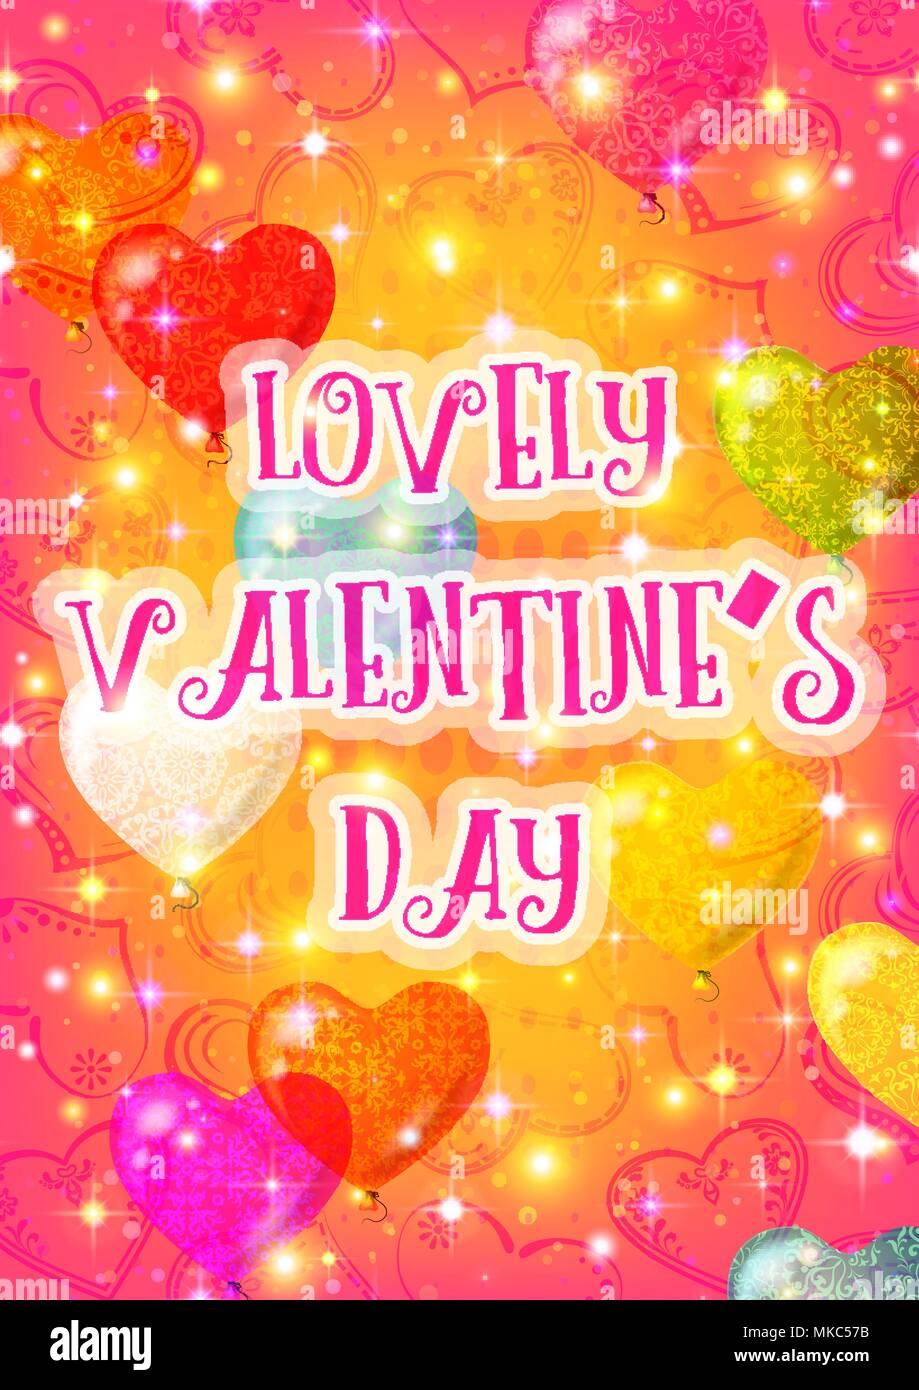 Valentine Background with Heart Balloons Stock Vector